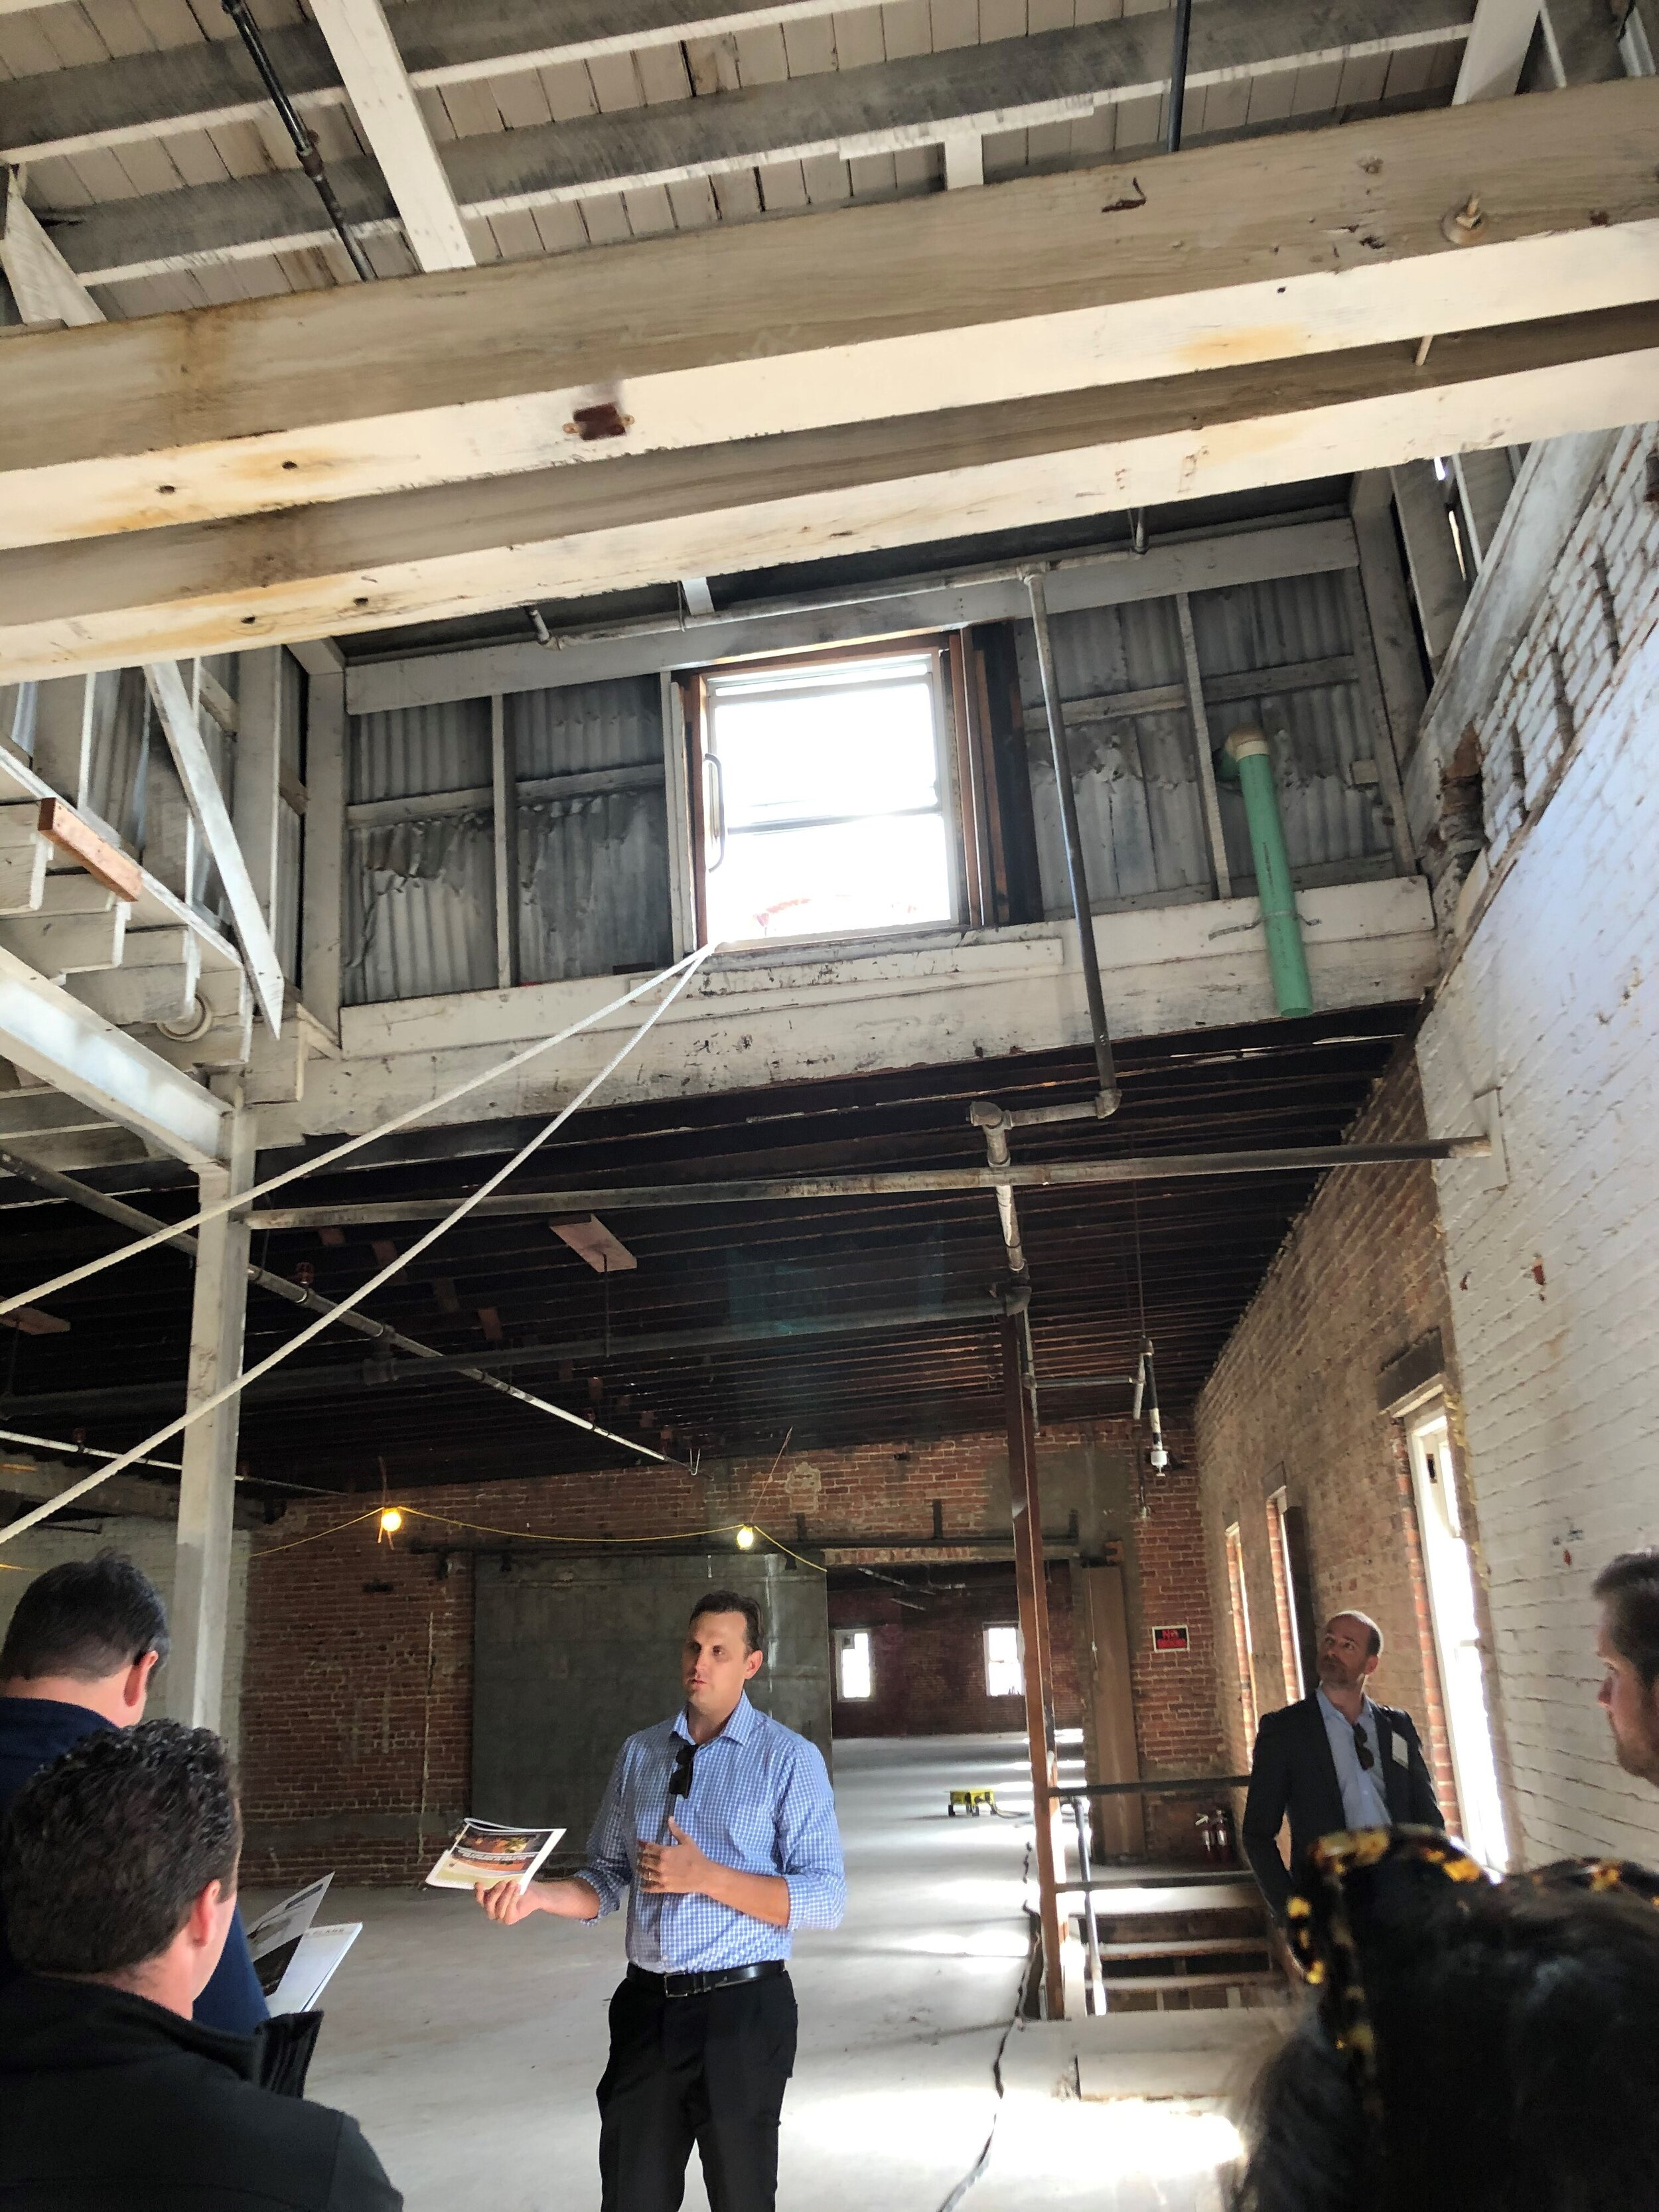 Evan August, SVP, Eastdil Secured – look at that skylight and ceiling structure! (Told you I'd geek out.)